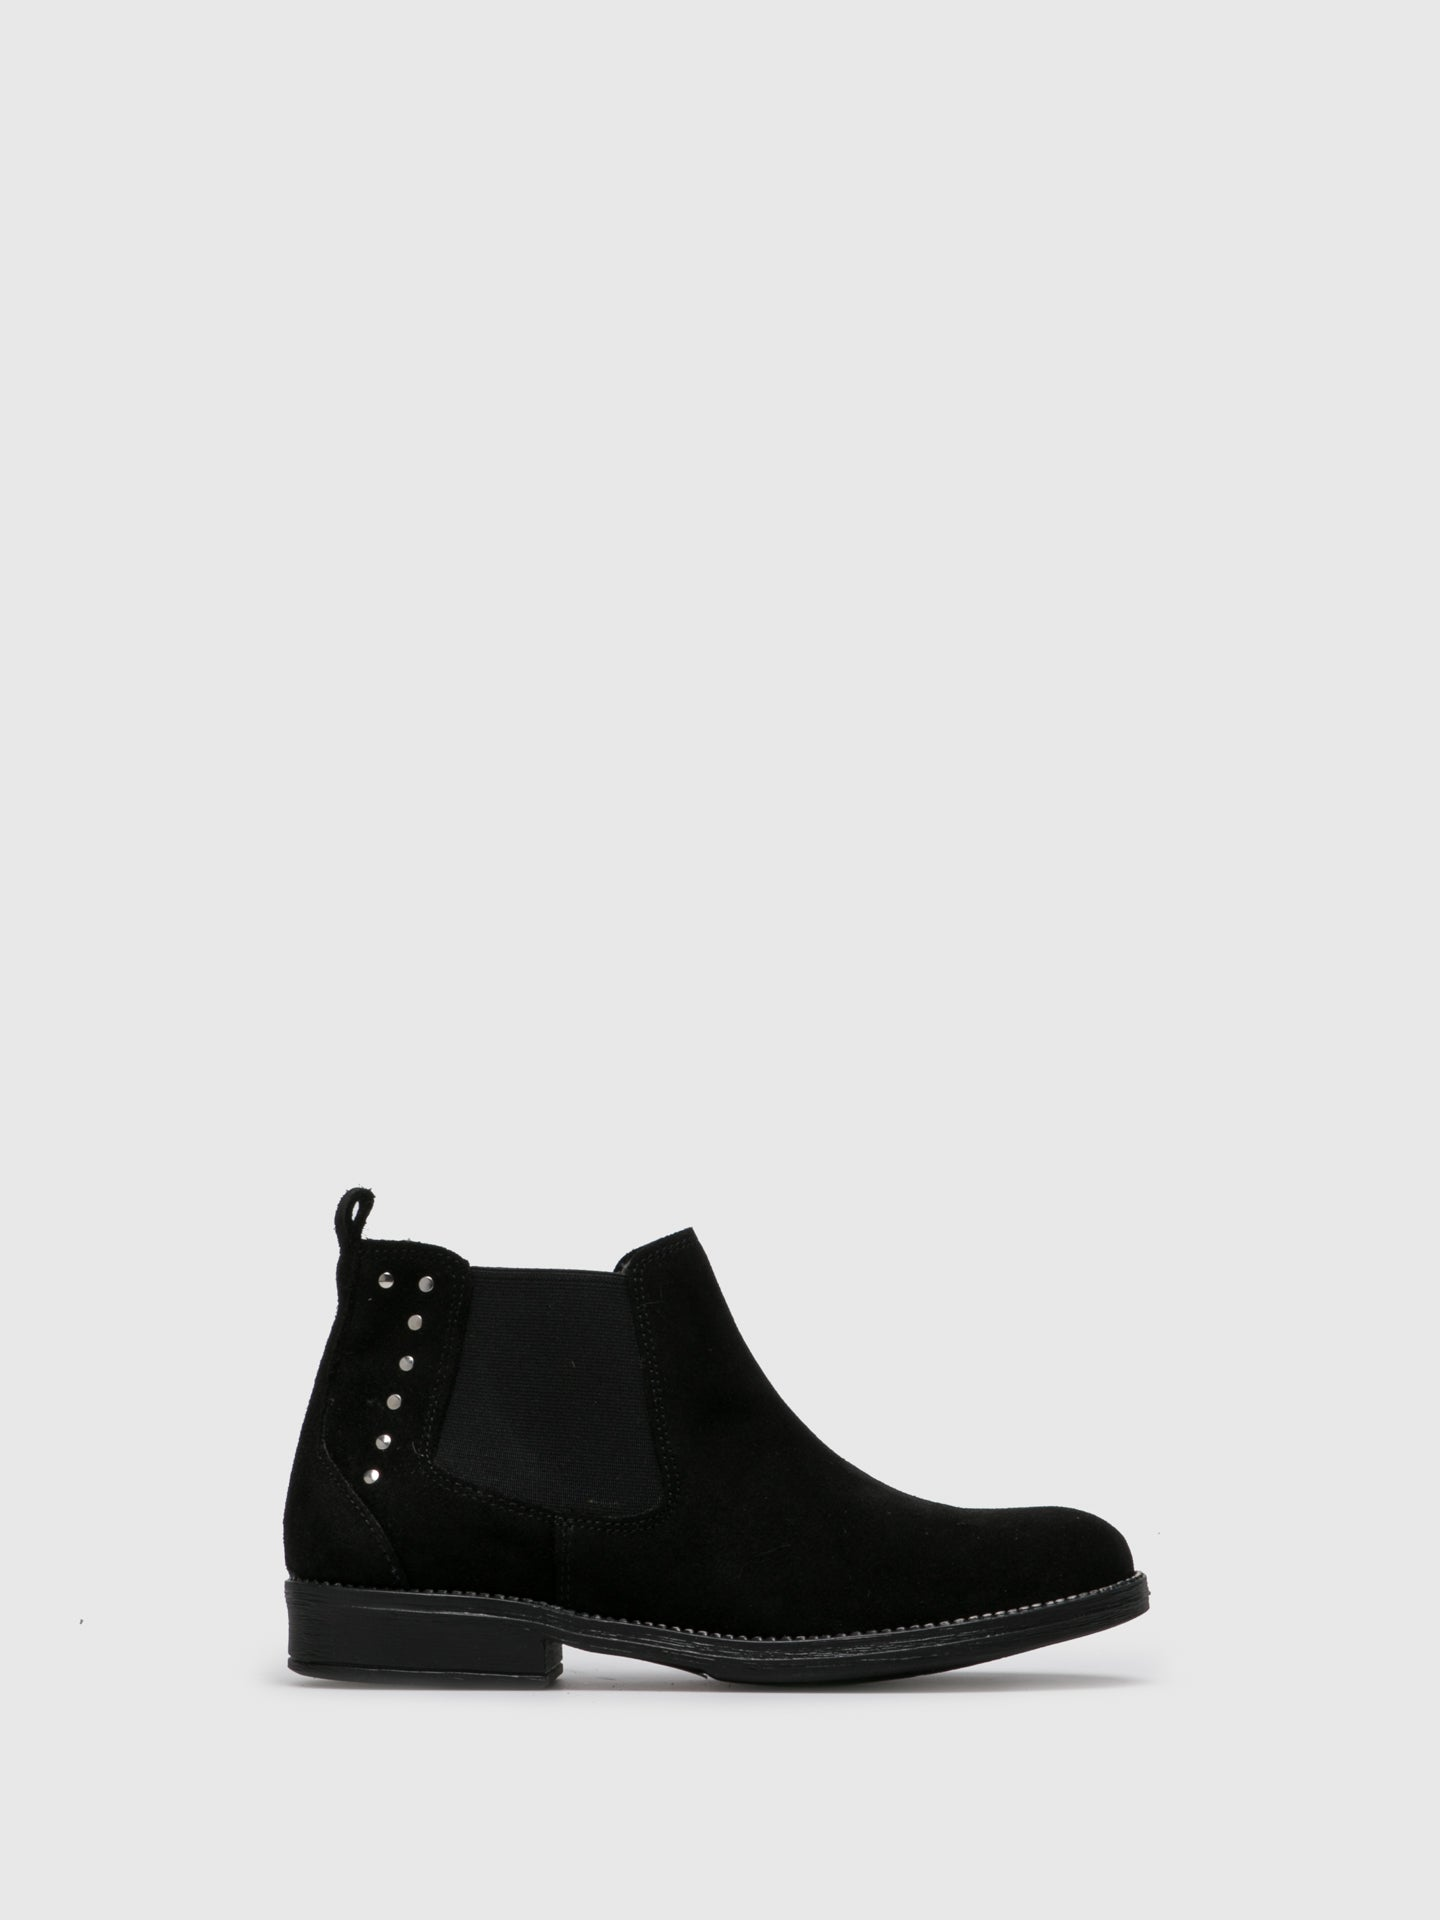 Sotoalto Black Elasticated Ankle Boots